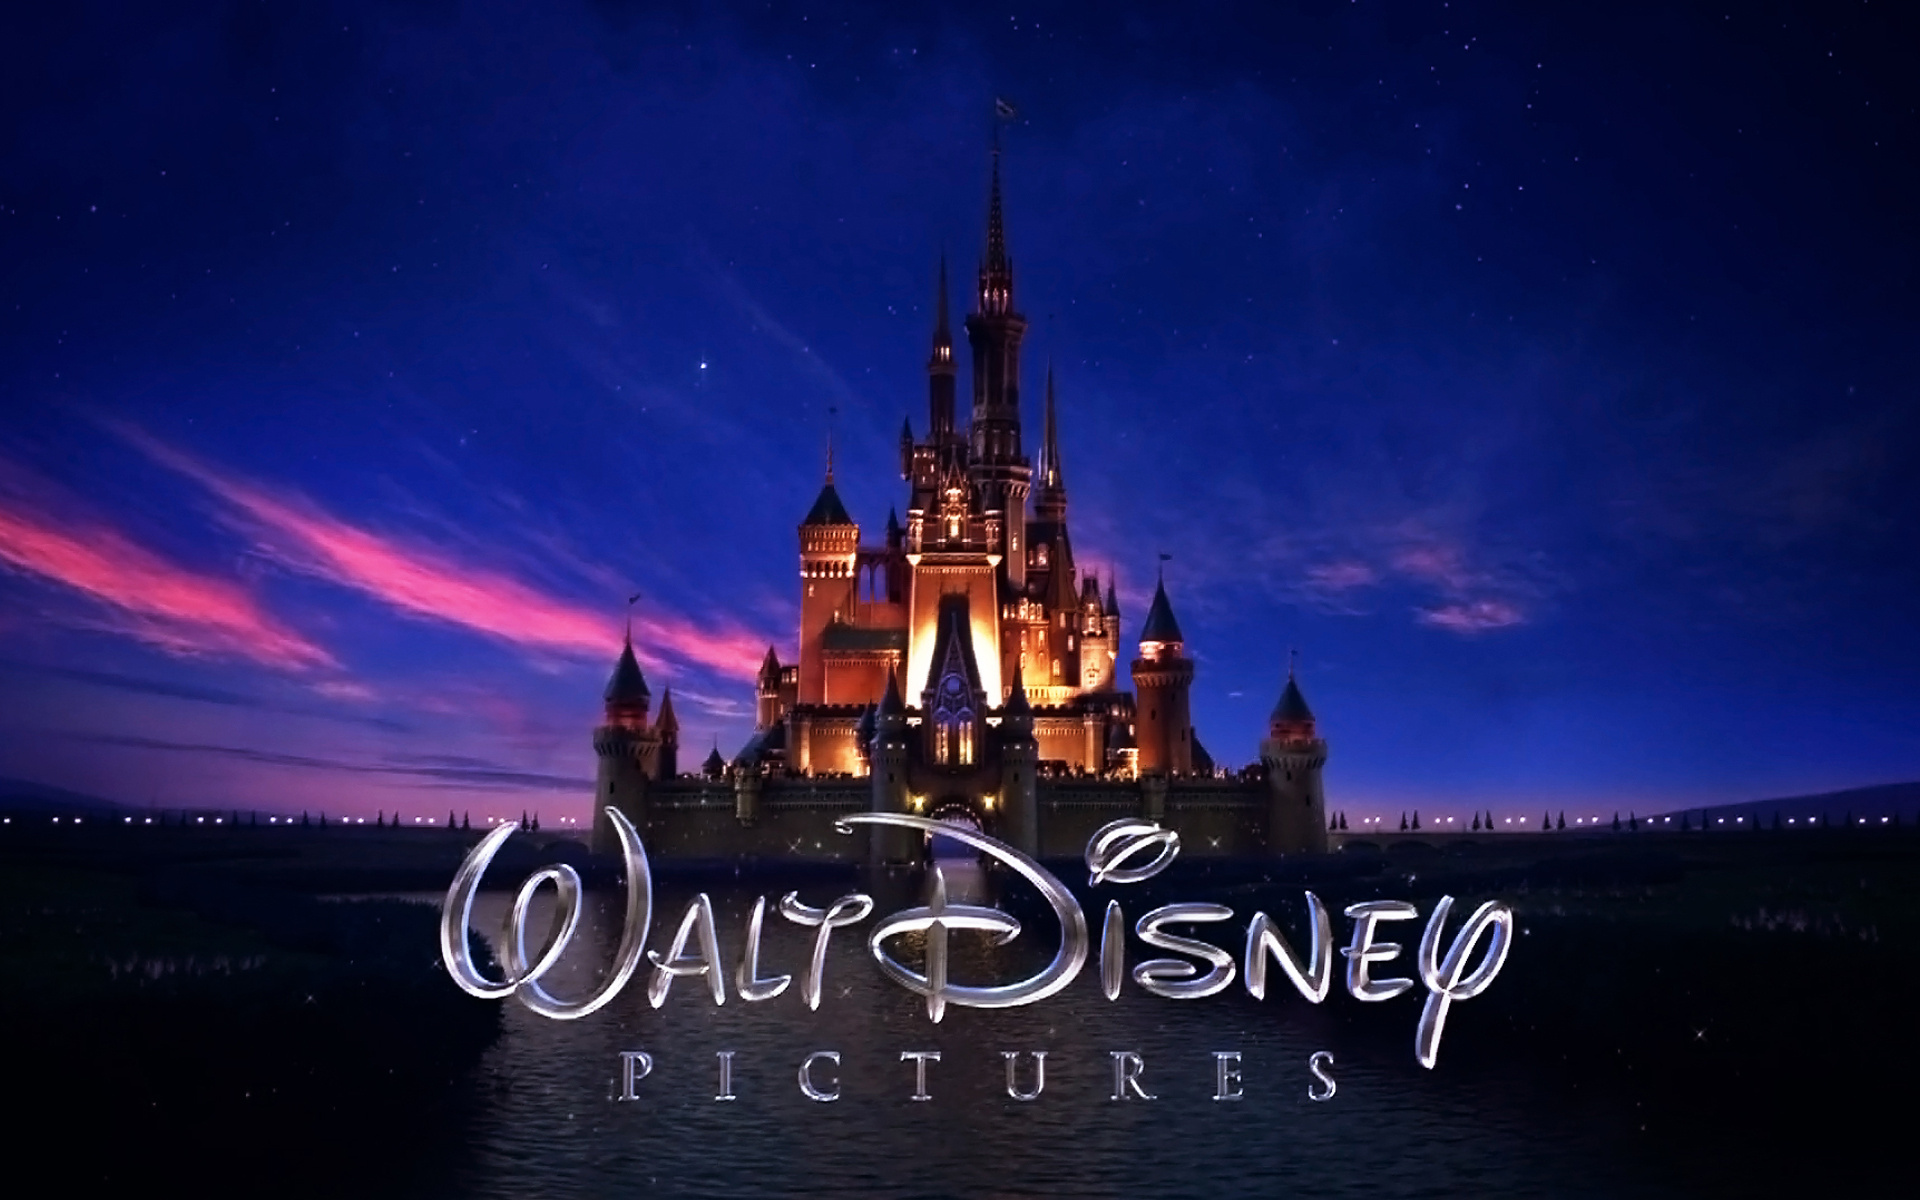 Walt Disney Pictures HD Desktop Wallpaper HD Desktop Wallpaper 1920x1200